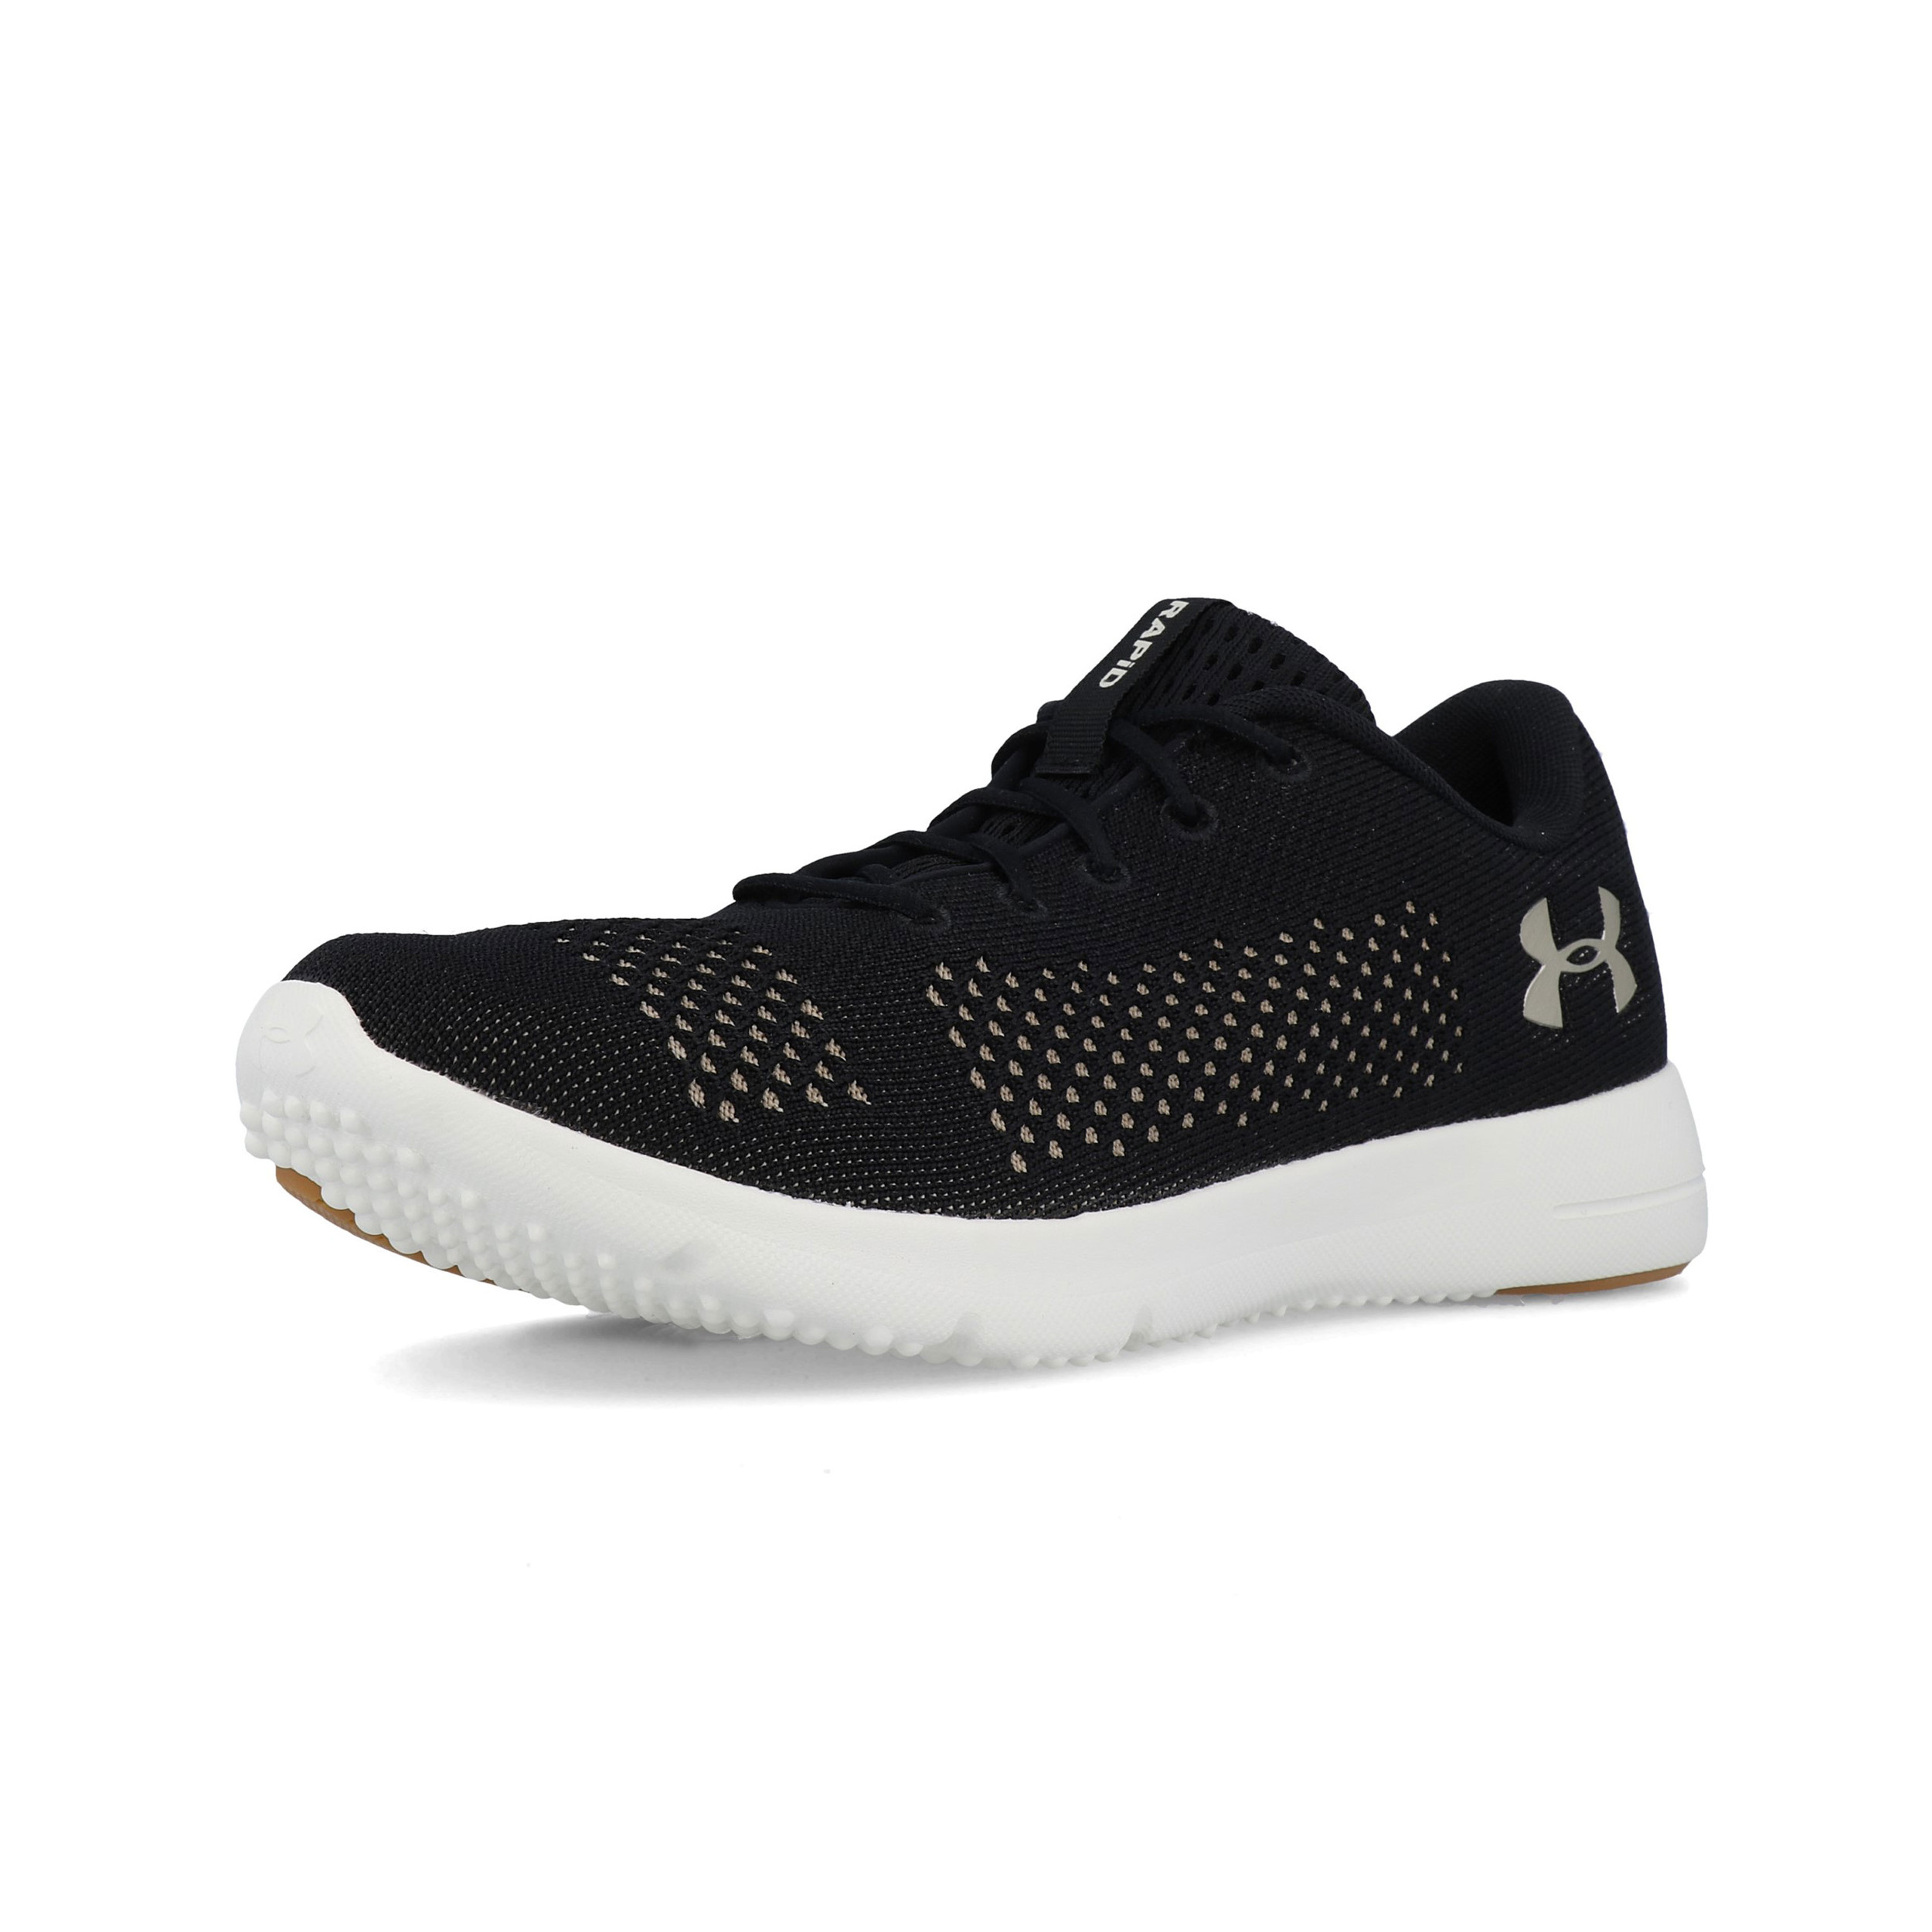 Under Armour Womens Rapid Running Shoes Trainers Sneakers Blue Sports Breathable